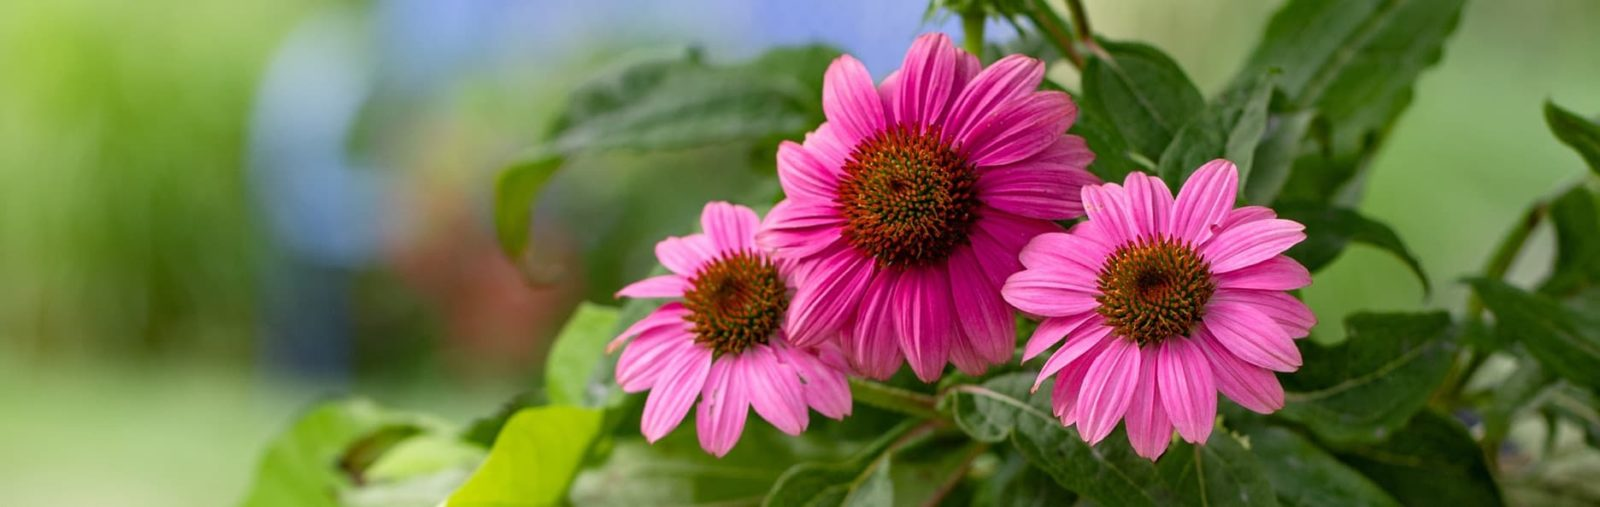 pink coneflowers in shade